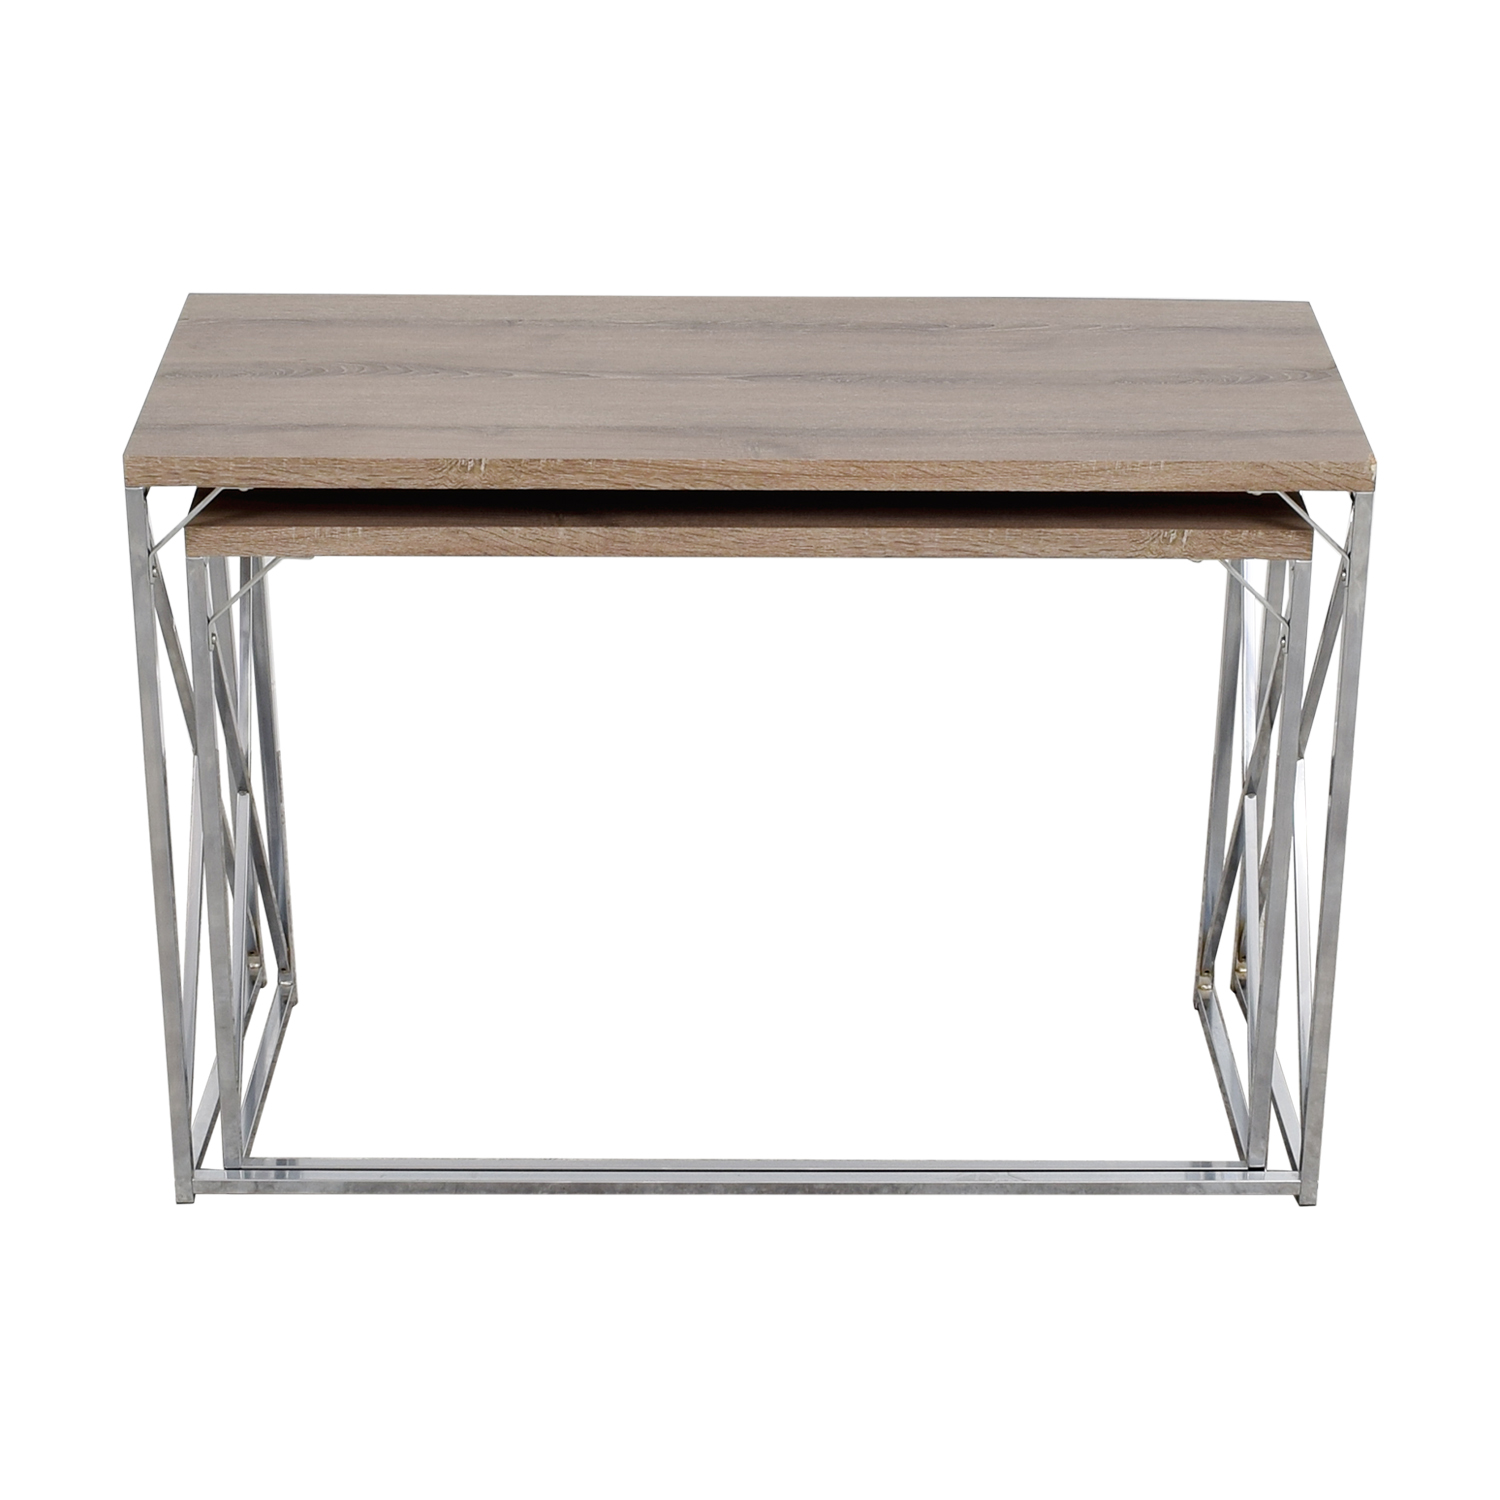 Monarch Rustic Nesting Console Tables / Tables